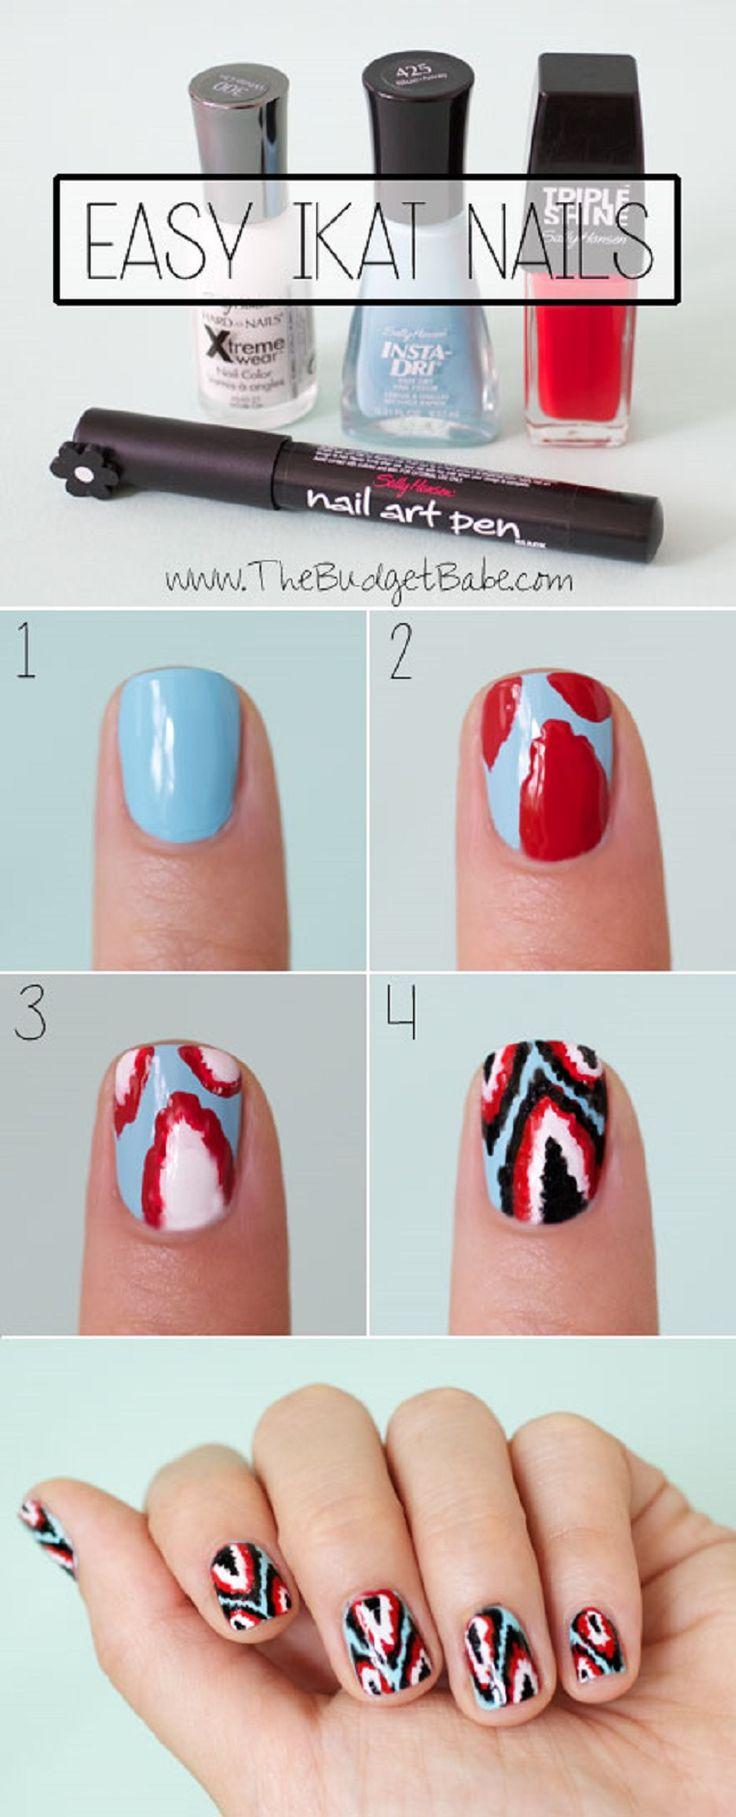 easy ikat nail art tutorial 13 wintery diy nail art tutorials gleamitup - Hot Designs Nail Art Ideas